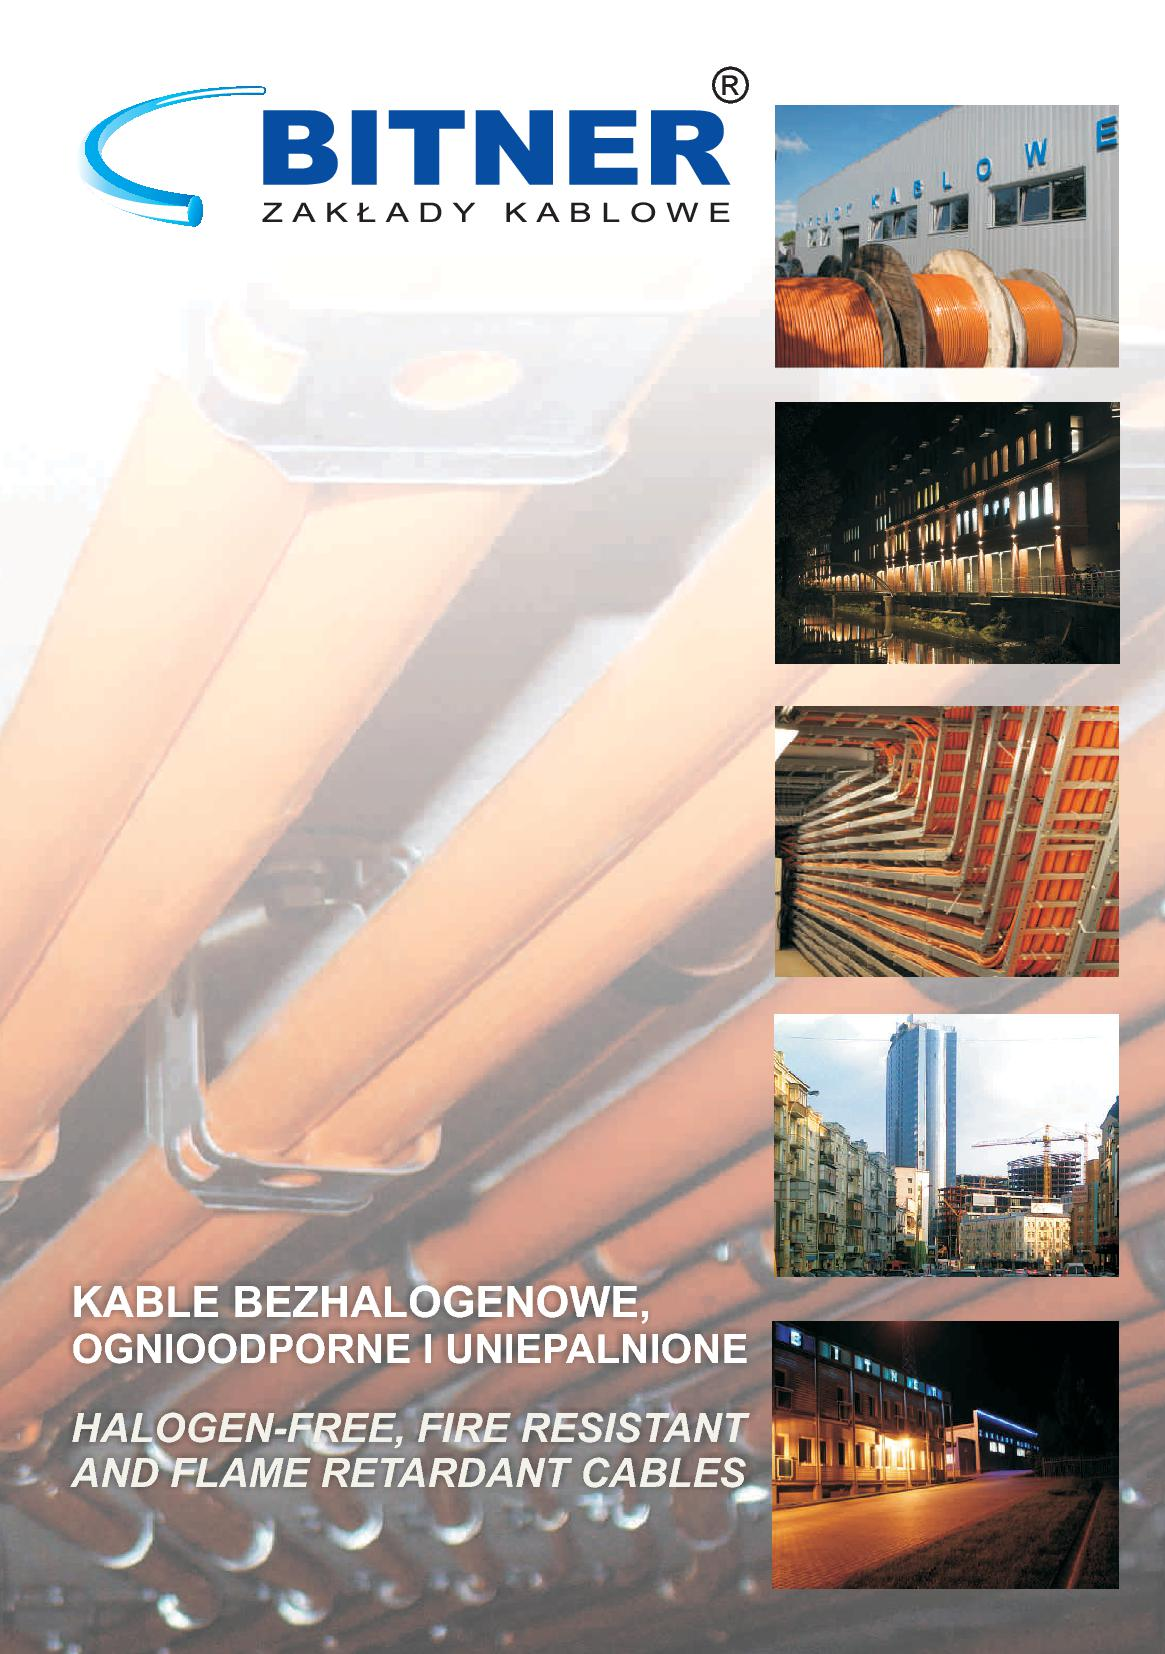 BITN_Catalog_Kable bezhalogenowe